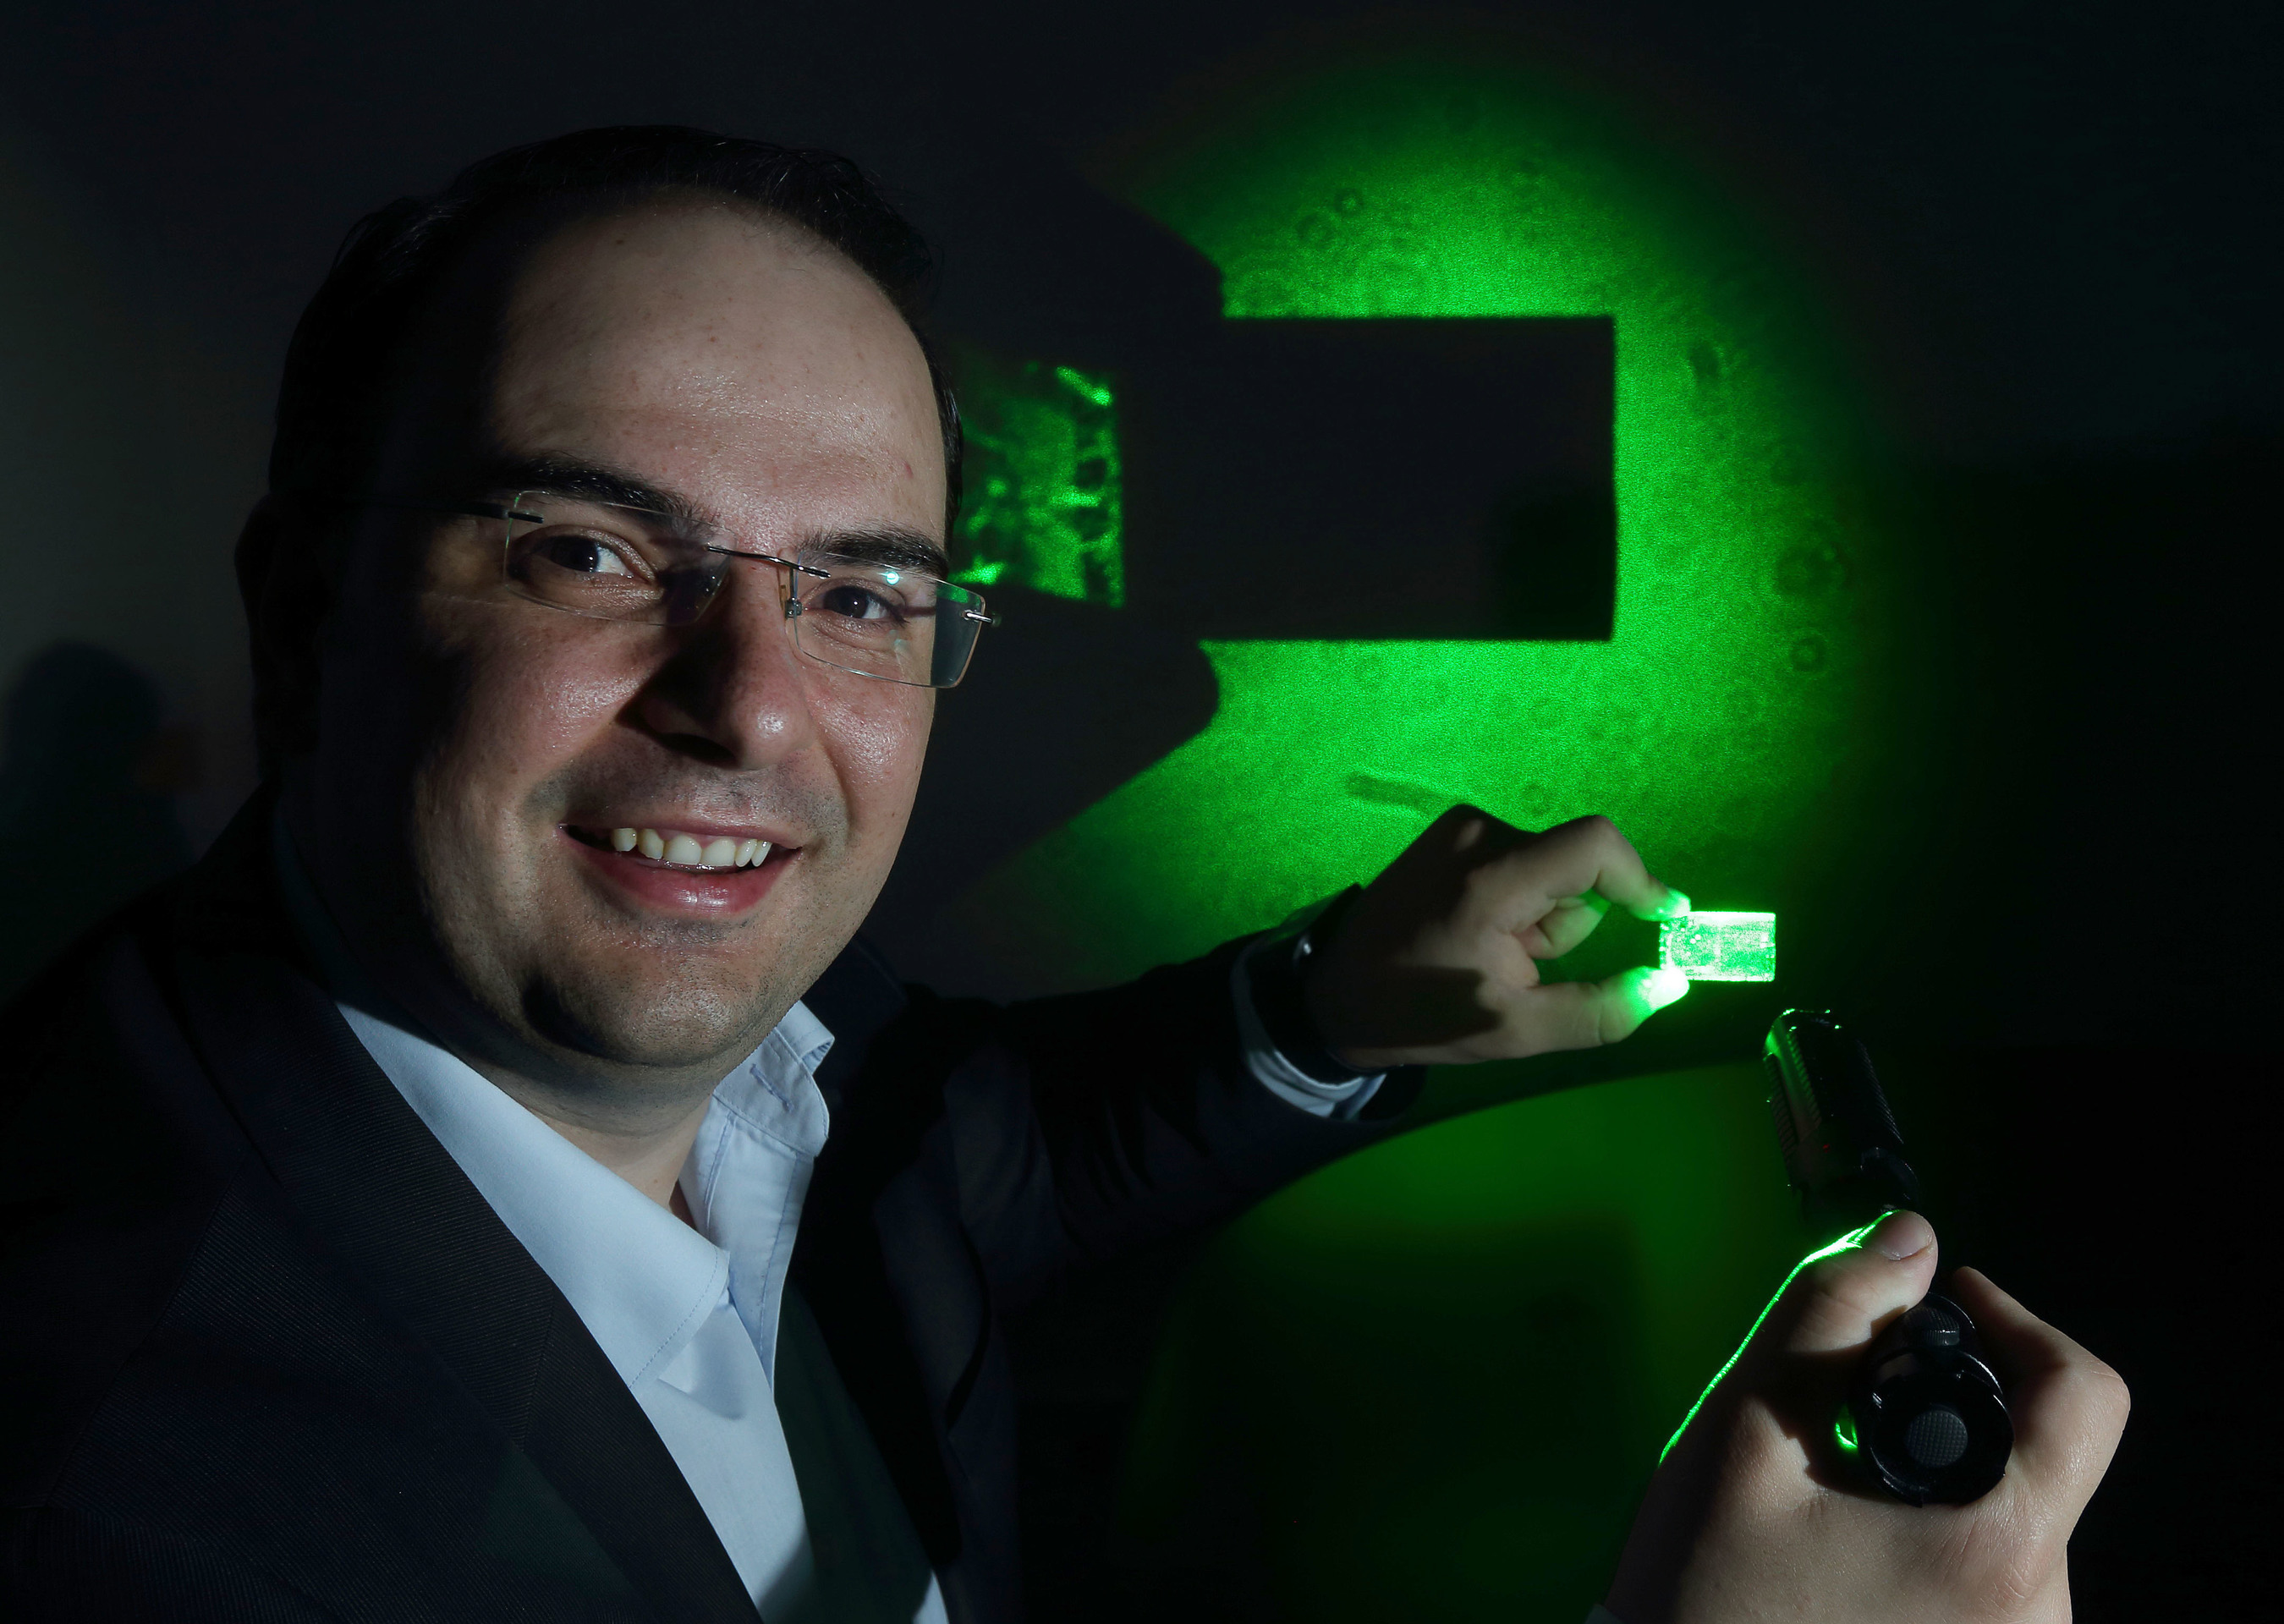 George Palikaras, President and CEO Lamda Guard demonstrates the effectiveness of his uniquely transparent yet 100% deflective nanocomposite windshield film at the announcement of the company's partnership with leading aircraft manufacturer Airbus. The film has the capacity to disable cockpit laser strikes. (PRNewsFoto/Lamda Guard)